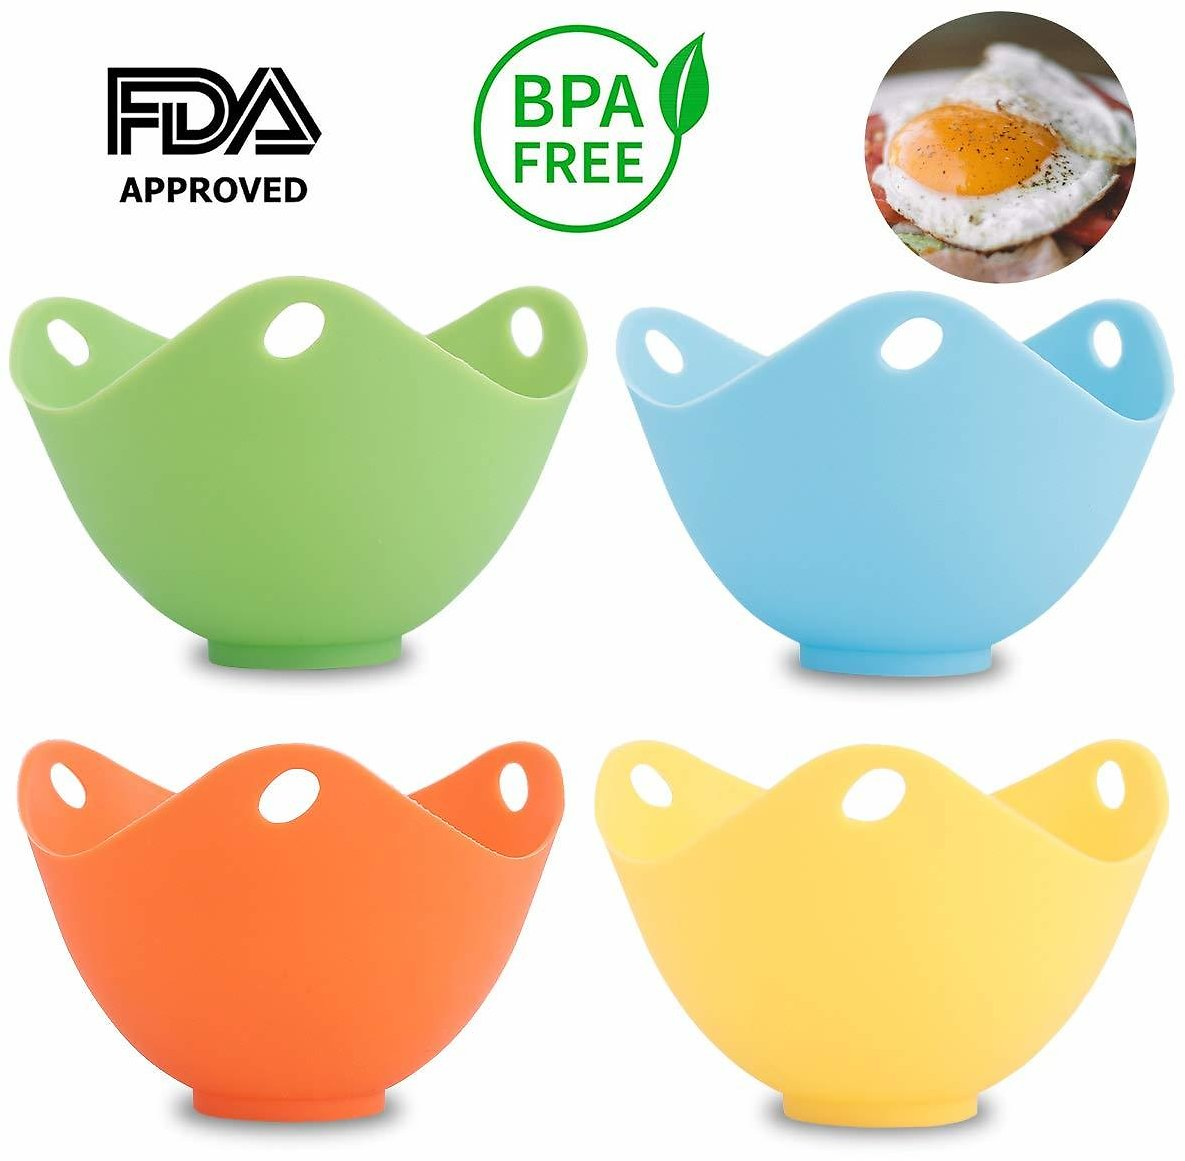 Amabest 4pcs Egg Poacher with Stand FDA Mini Silicone Egg Cooker Egg Cups Egg Accessories No BPA Silicone Bowl Egg Poacher Maker, for Microwave, Egg Poacher Pan, Egg Poachers Cookware, Stovetop